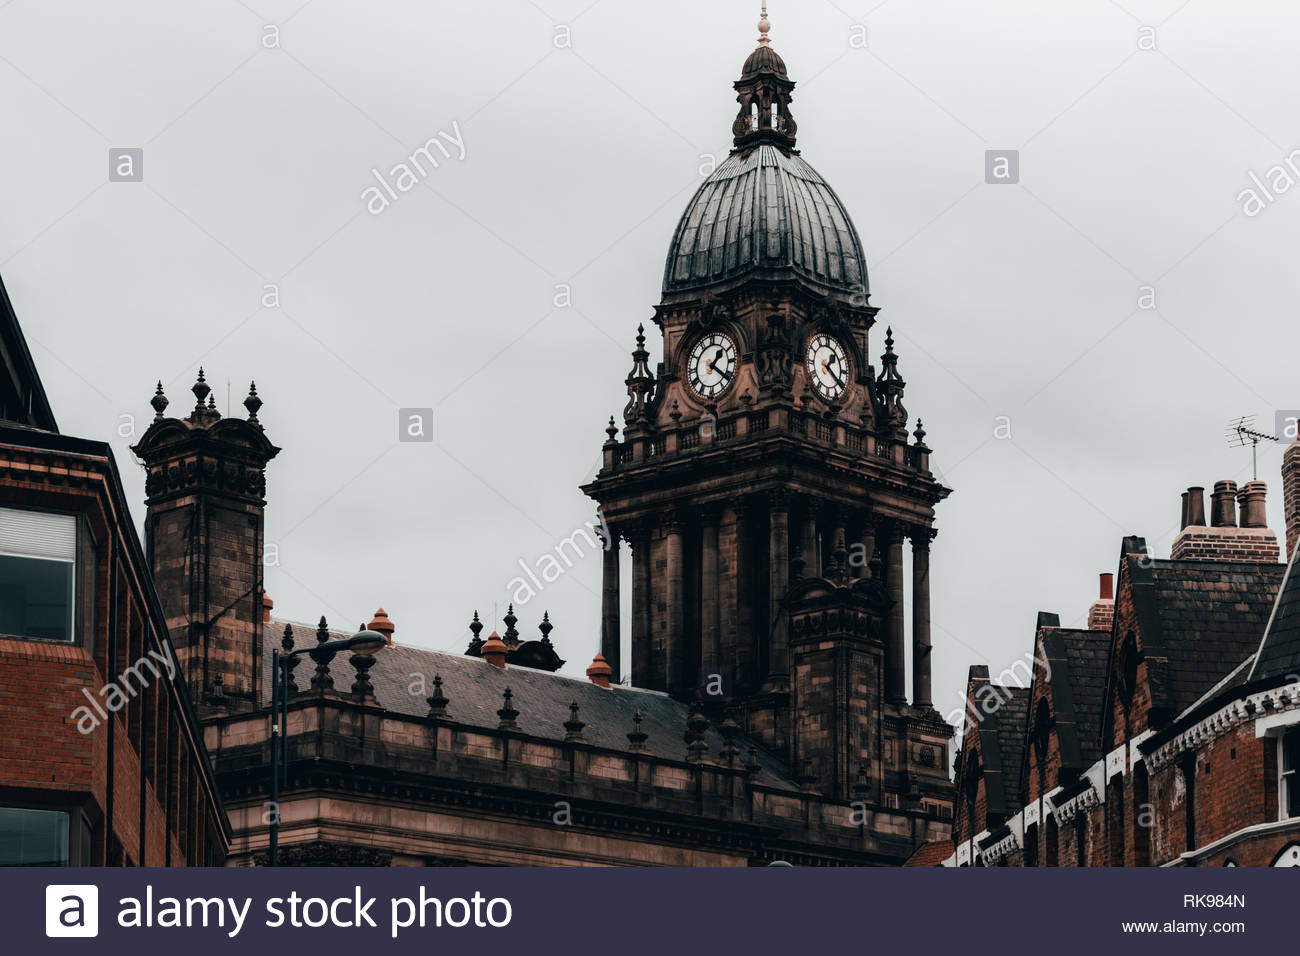 Leeds, united Kingdom - November, 03, 2018: View of leeds town hall clock tower on a cloudy day. - Stock Image